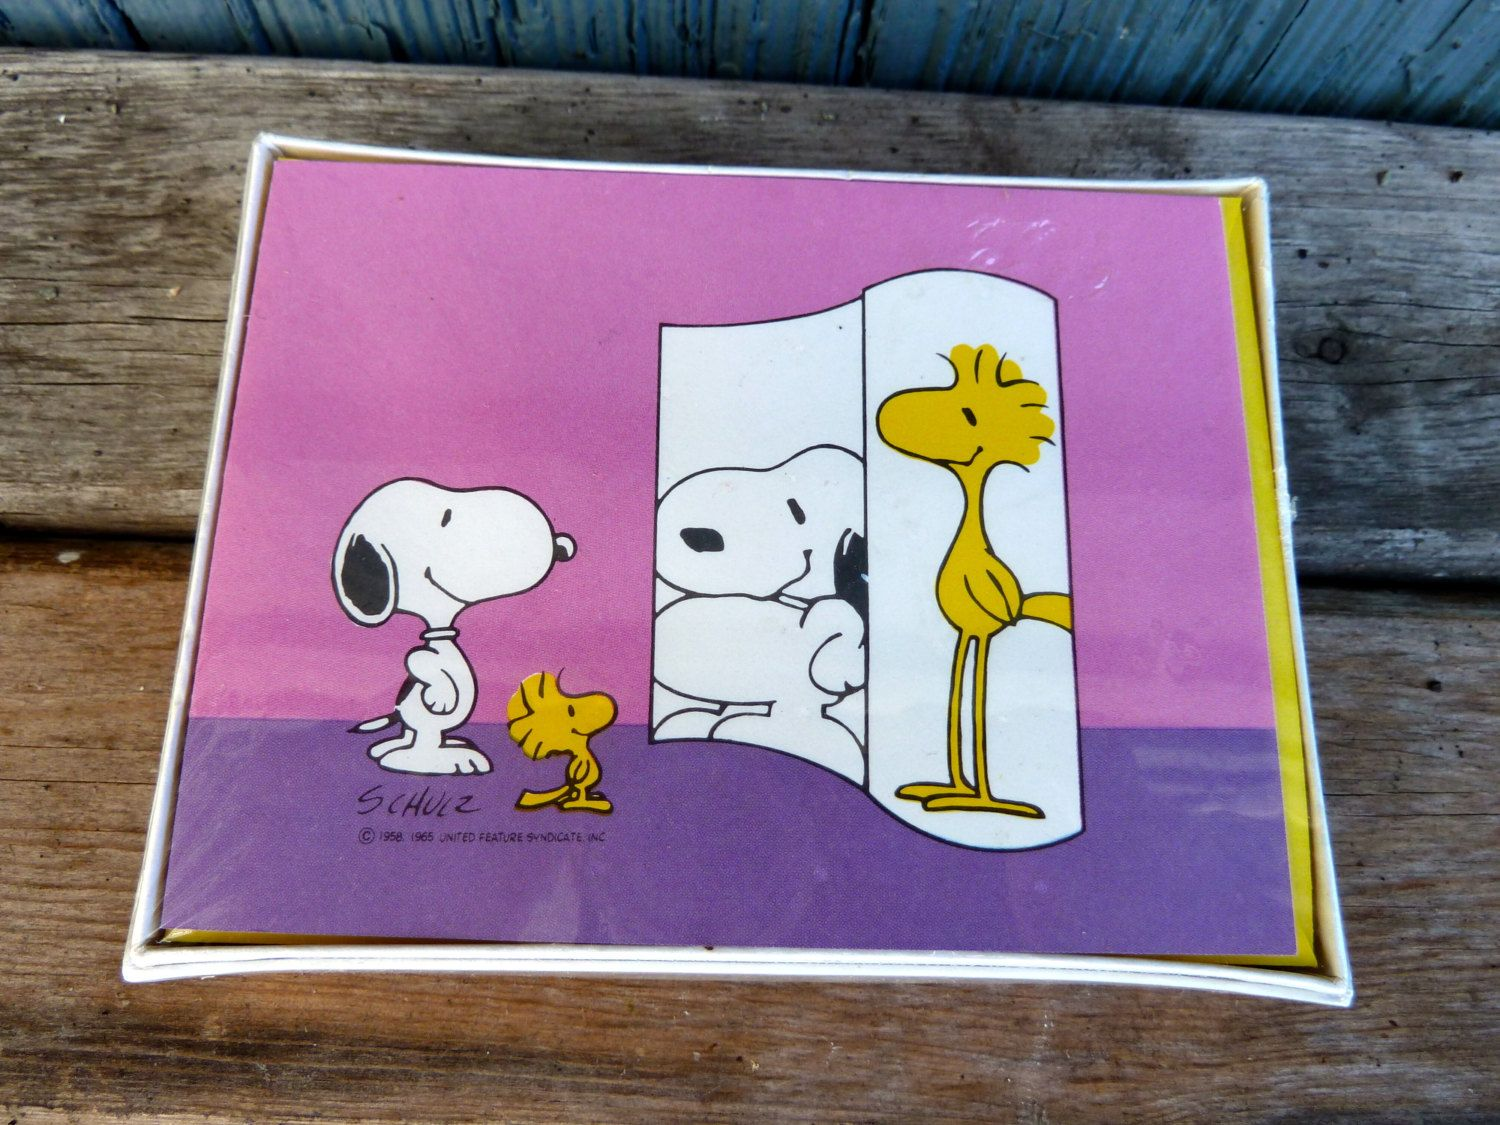 Vintage Hallmark Greeting Cards Featuring Snoopy And Woodstock From